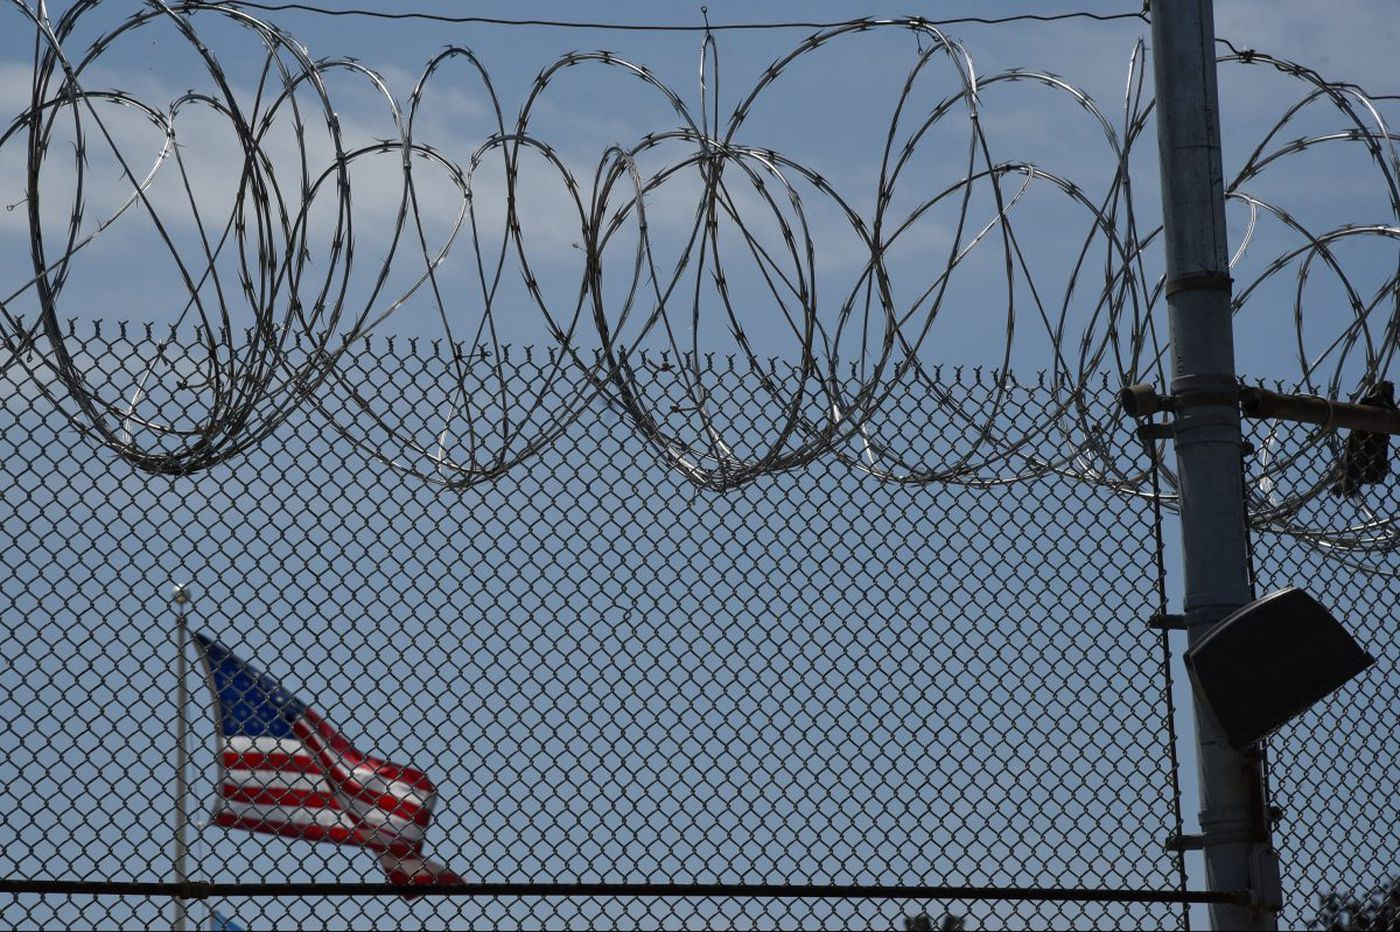 Philly should look west for criminal justice reform ideas | Editorial